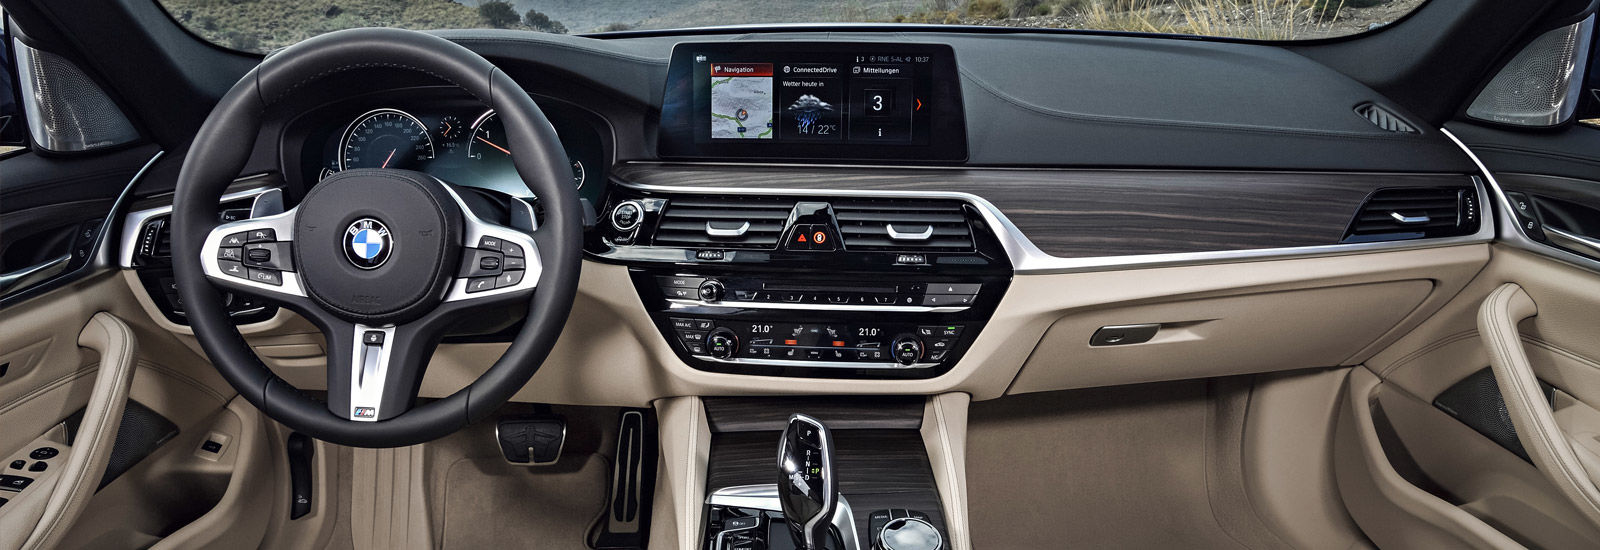 2017 Bmw 5 Series Touring Price Specs Release Date Carwow